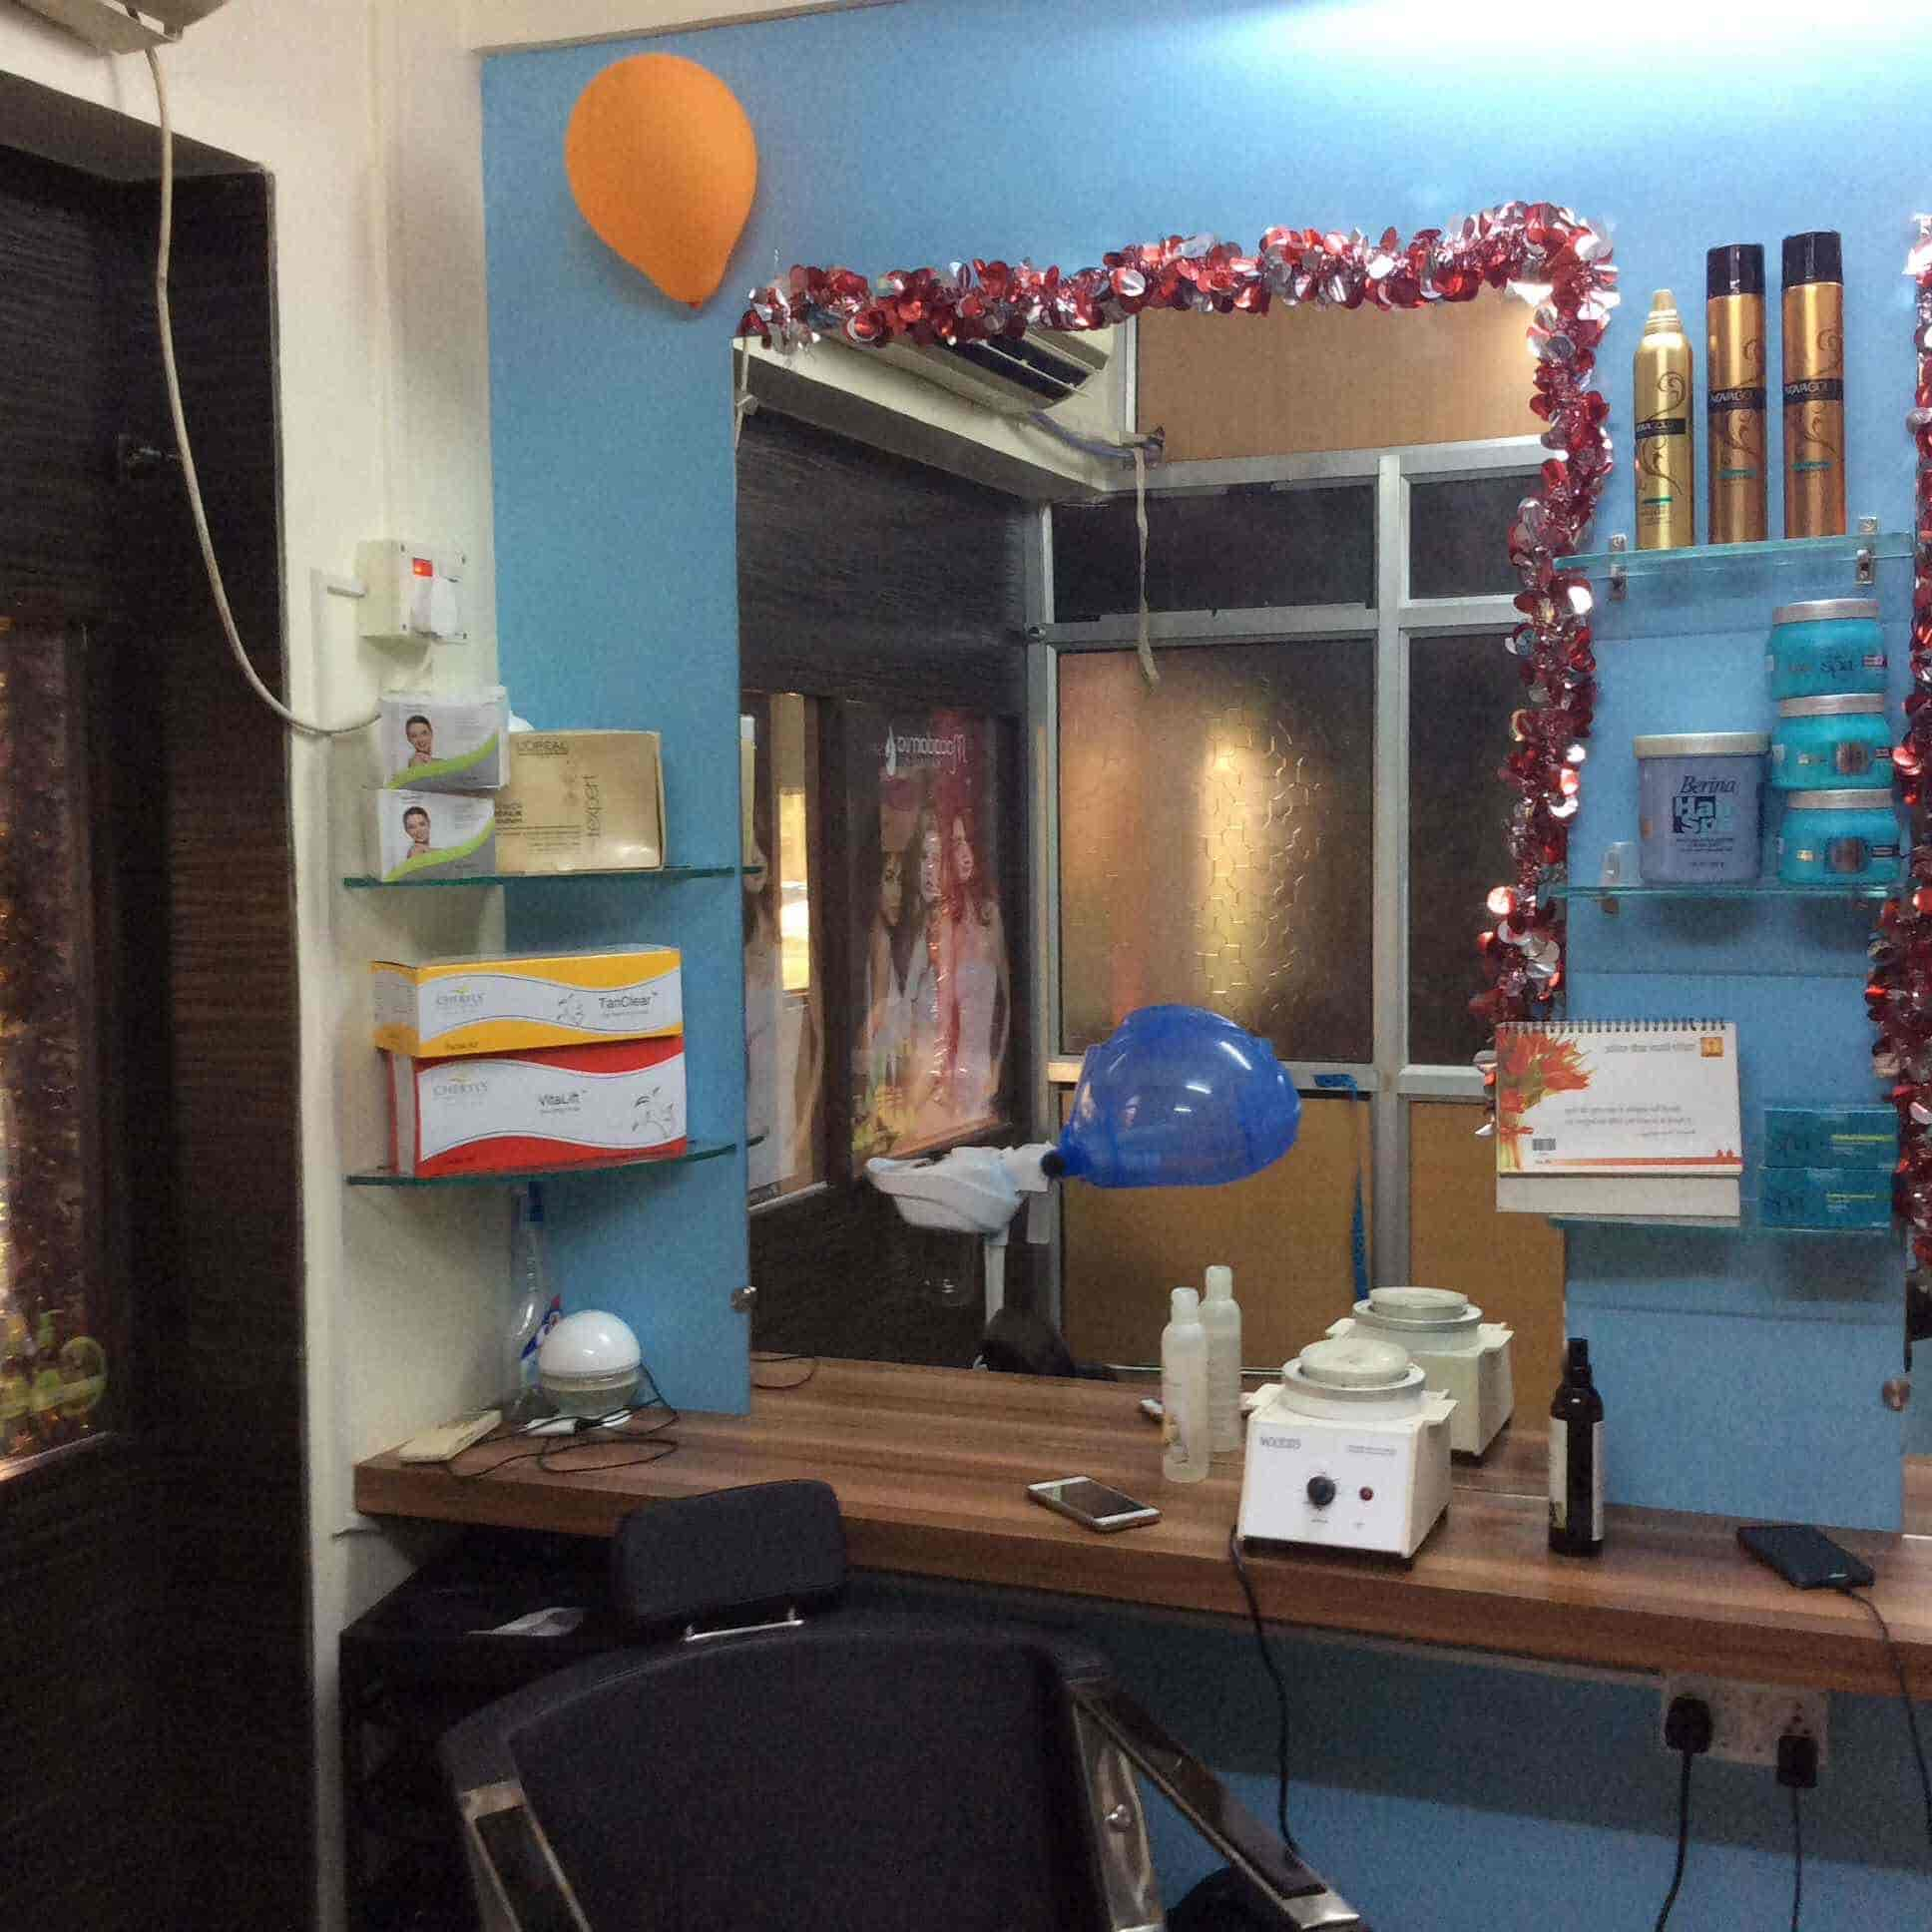 belleza one services private limited photos mulund west mumbai